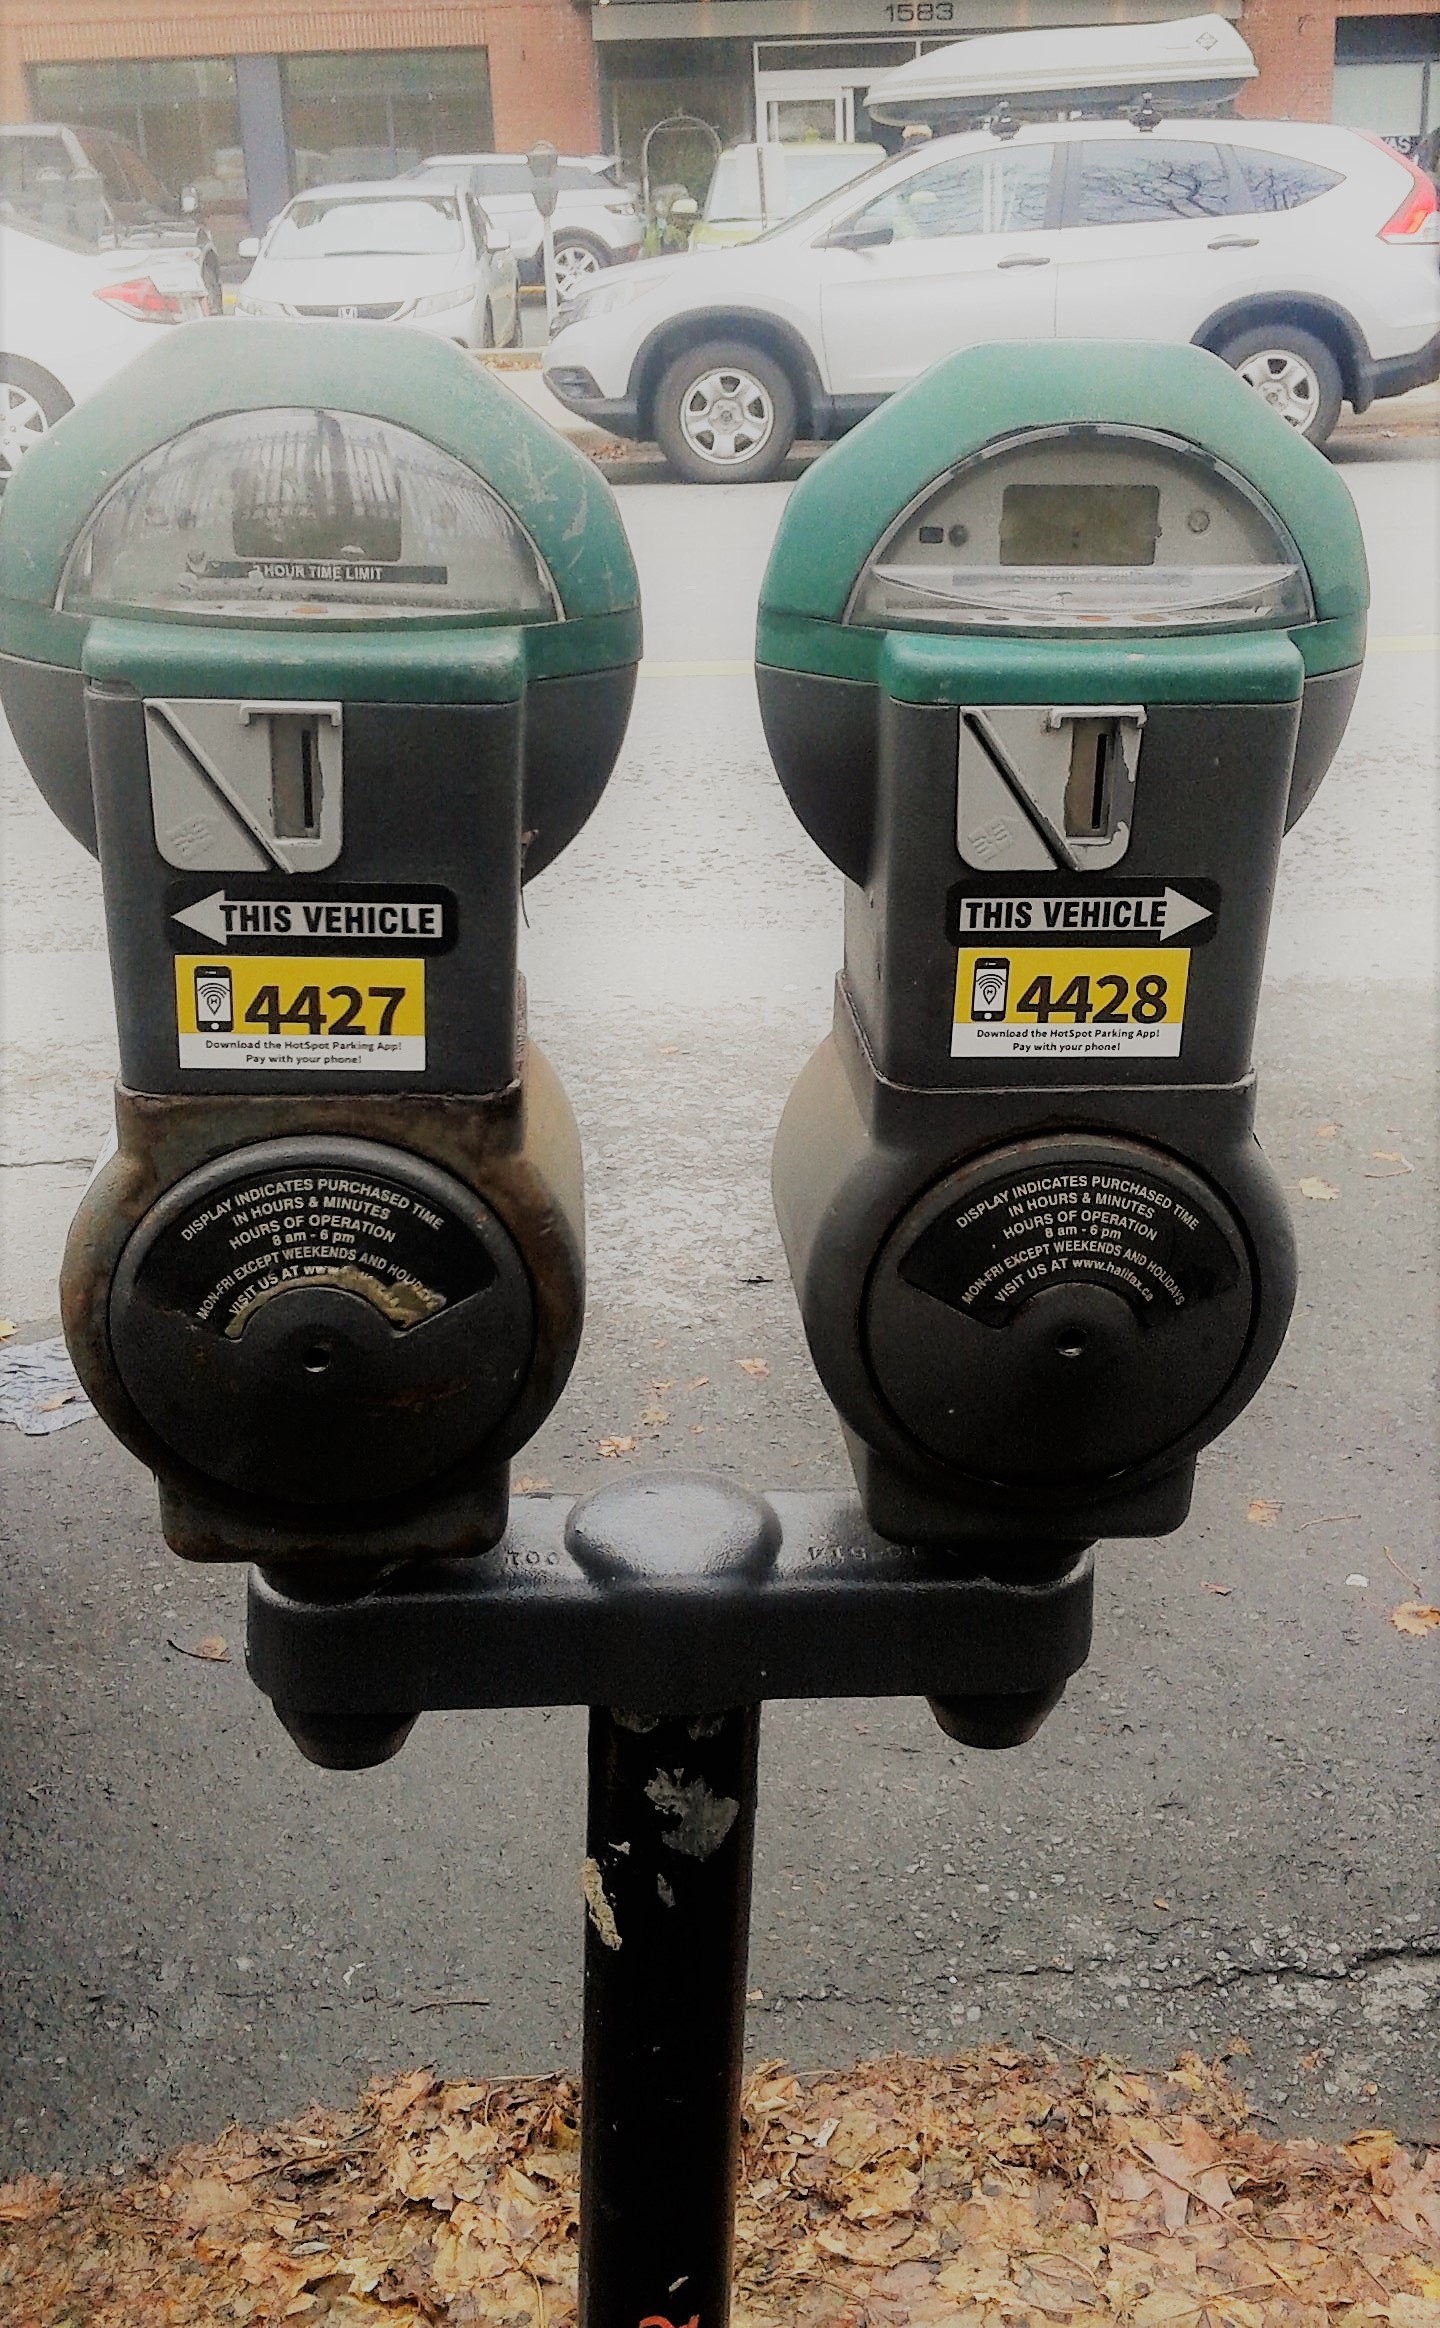 HotSpot available at municipal meters in Halifax